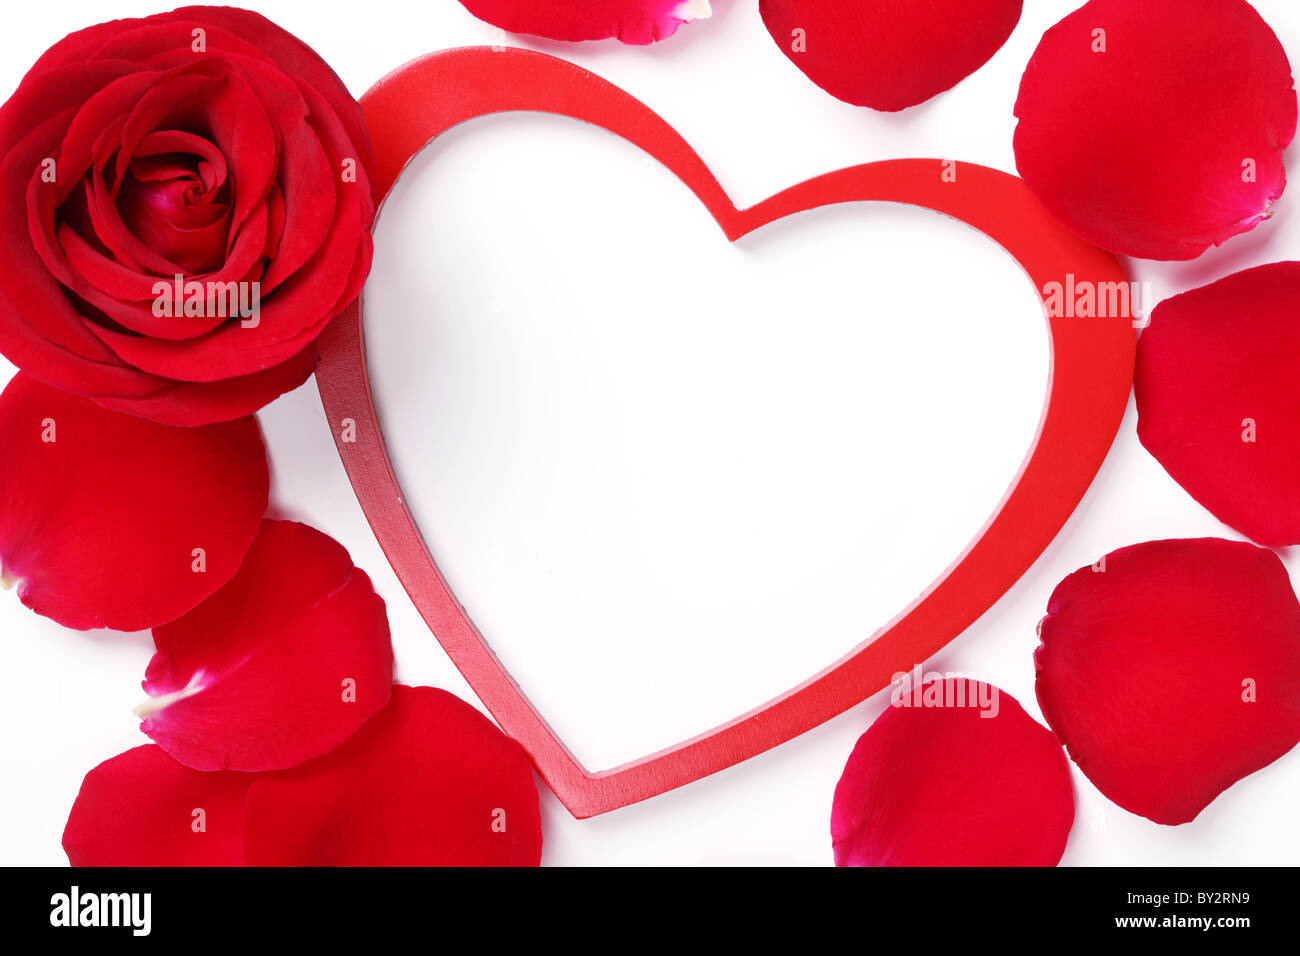 Valentine Day Frame Stock Photos & Valentine Day Frame Stock Images ...